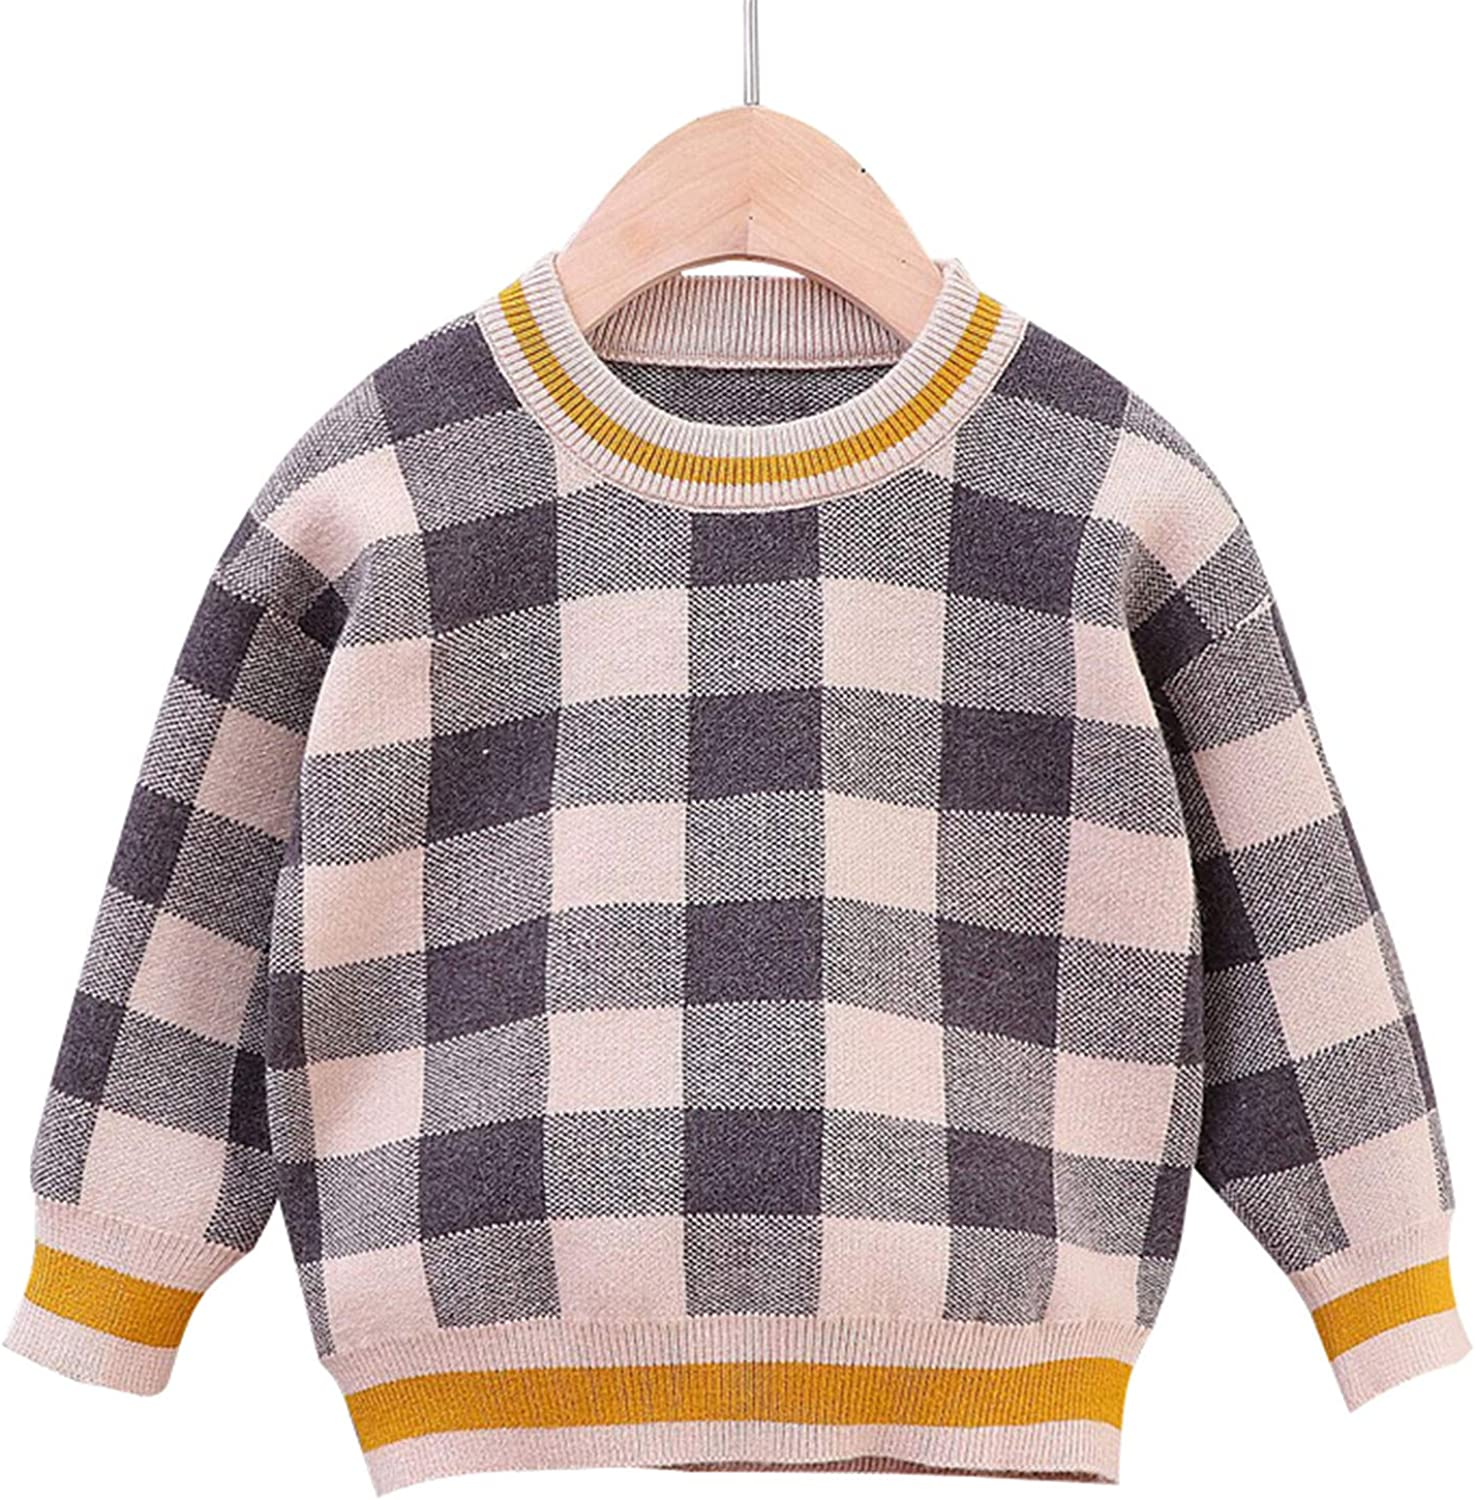 Toddler Baby Crewneck Sweatshirt Girl Boy Fall Long Sleeve Rainbow Floral Polka Dot Pullover T-Shirt Sweater Outfit